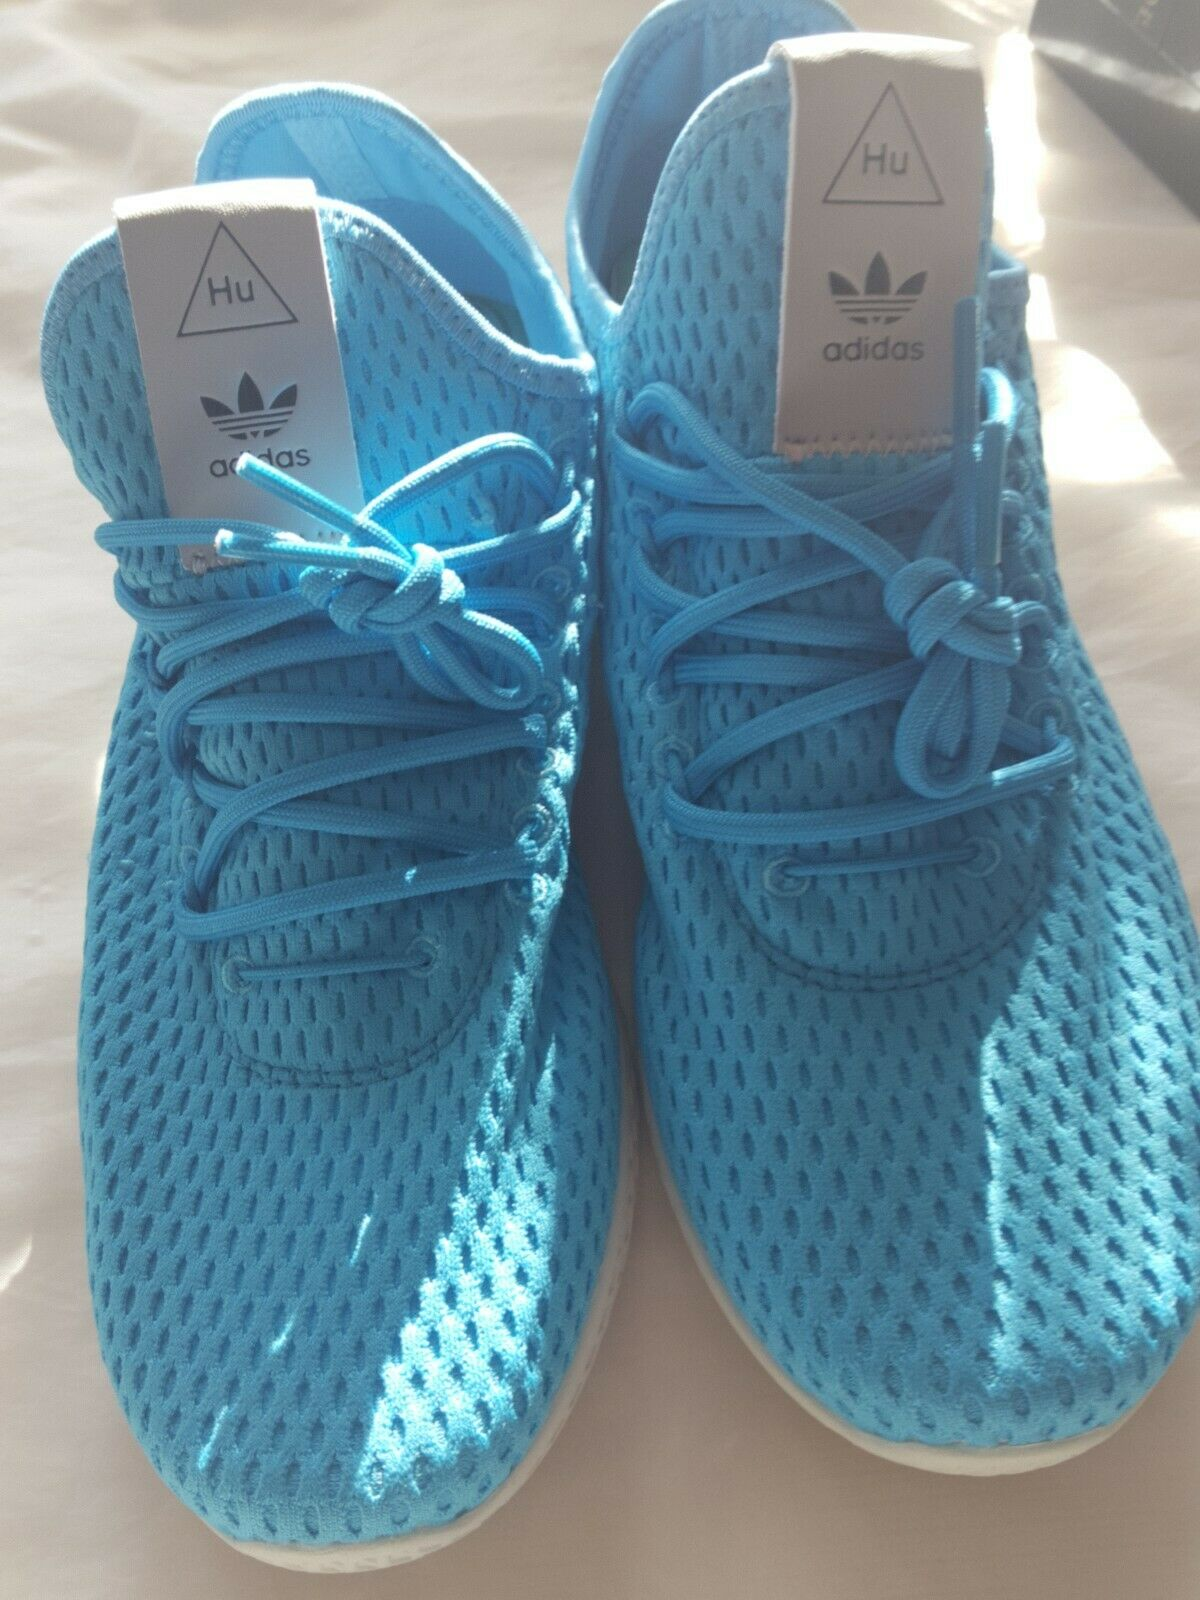 NEW MENS ADIDAS PHARRELL WILLIAMS PW TENNIS HU SNEAKERS-SIZE US 7.5 FR 39.5